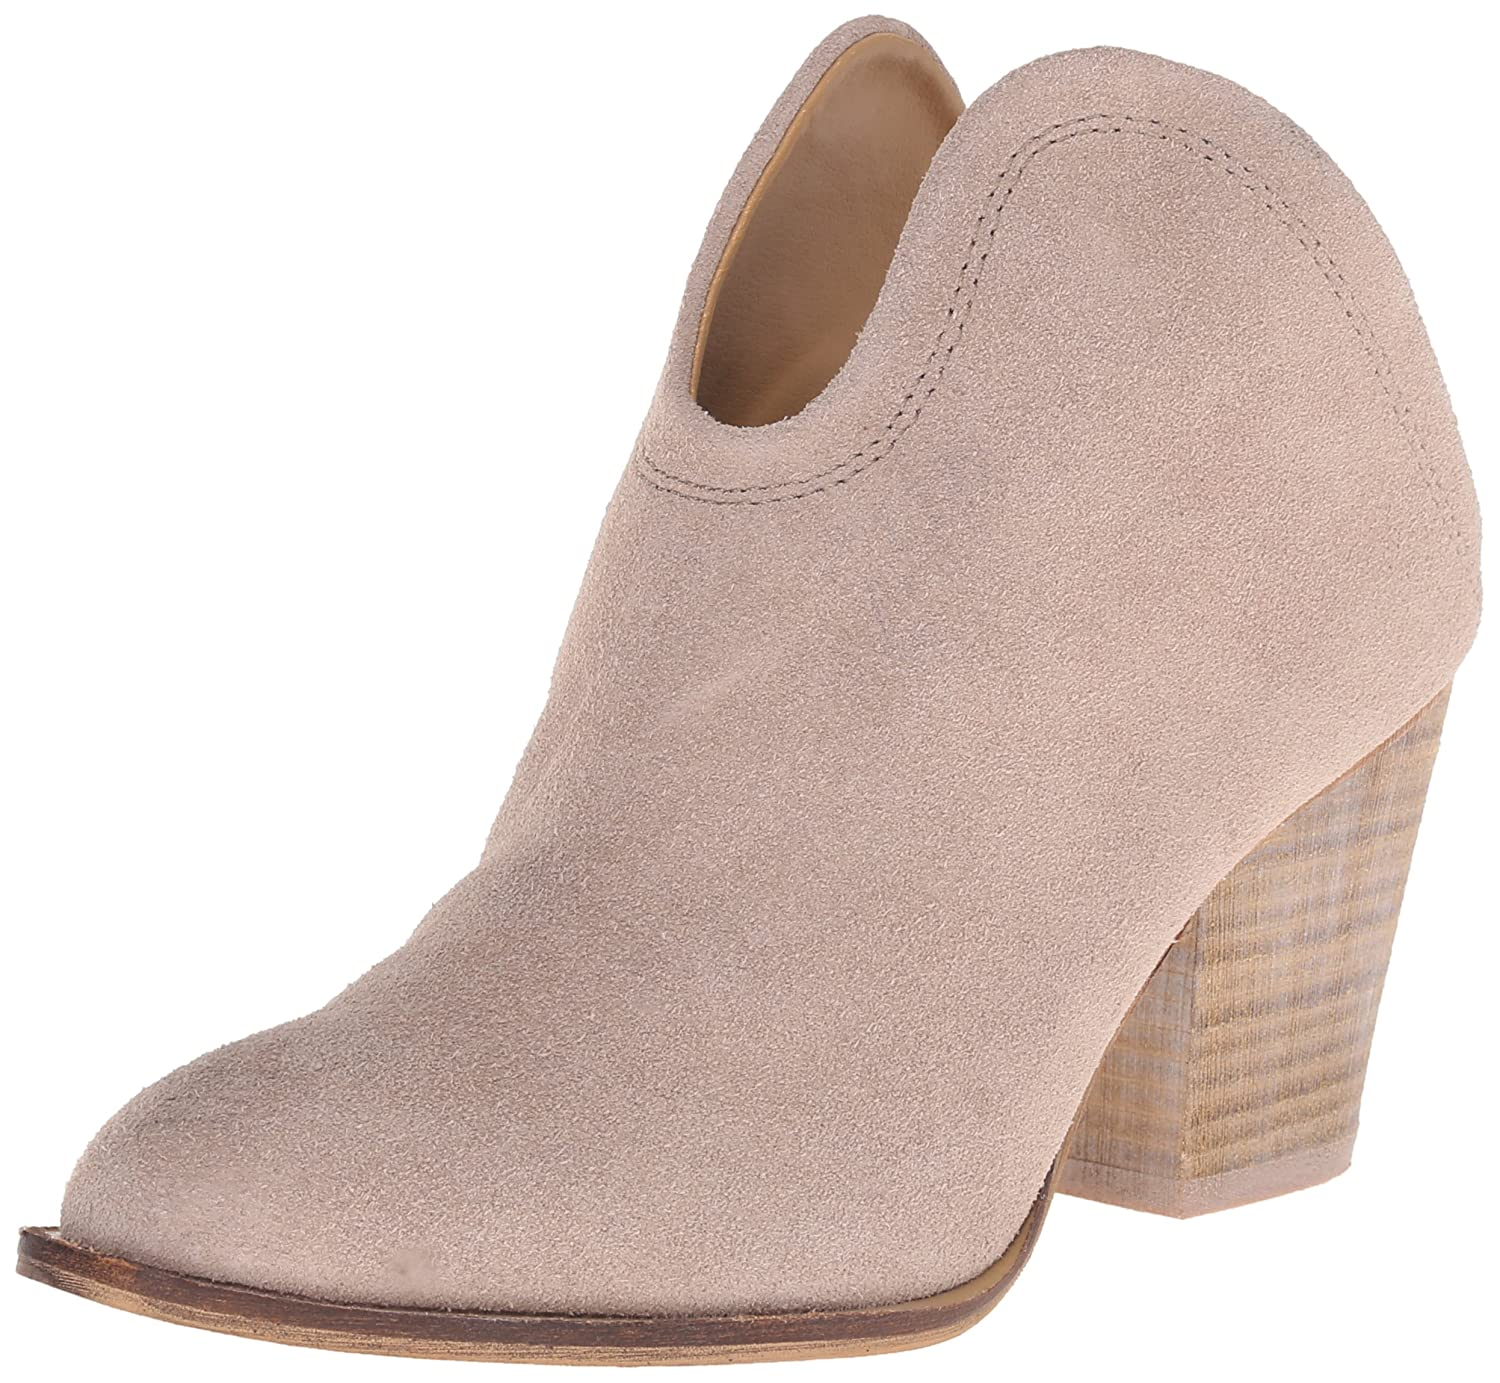 Chinese Laundry Women's Kelso Bootie B011XZJ6UK 9 B(M) US|Grey Suede